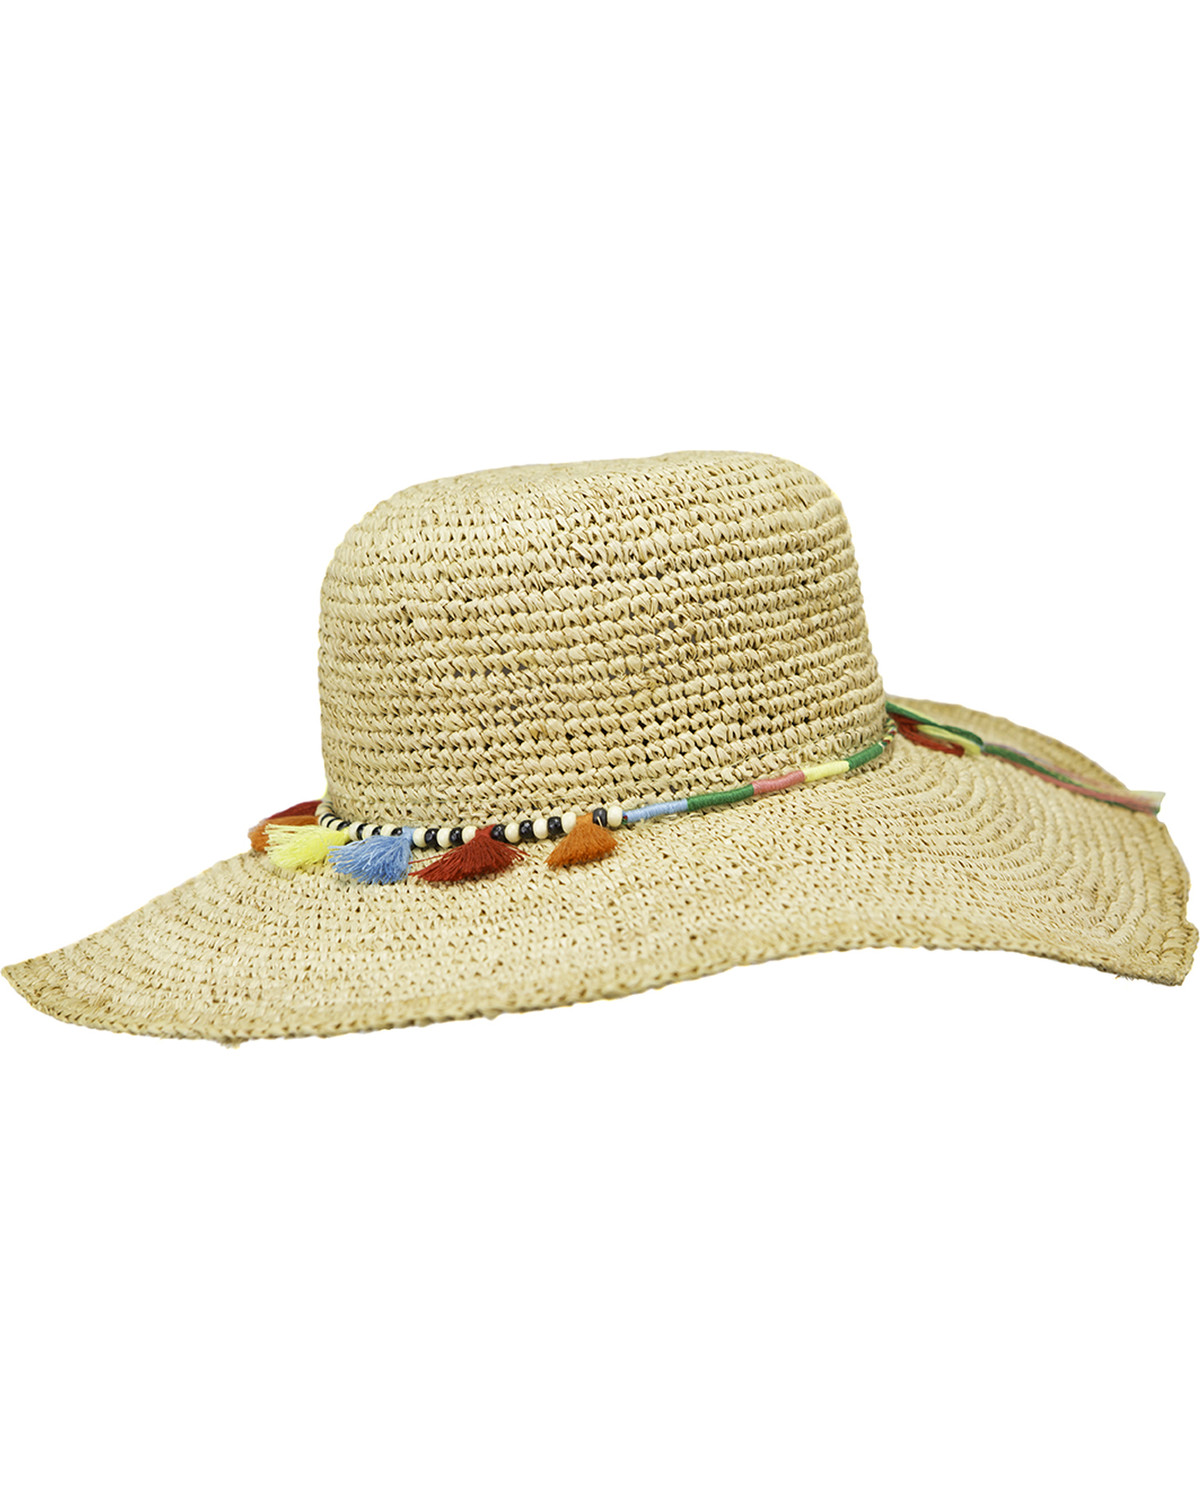 de9759ec5869d Peter Grimm Women s Natural Jama Straw Hat